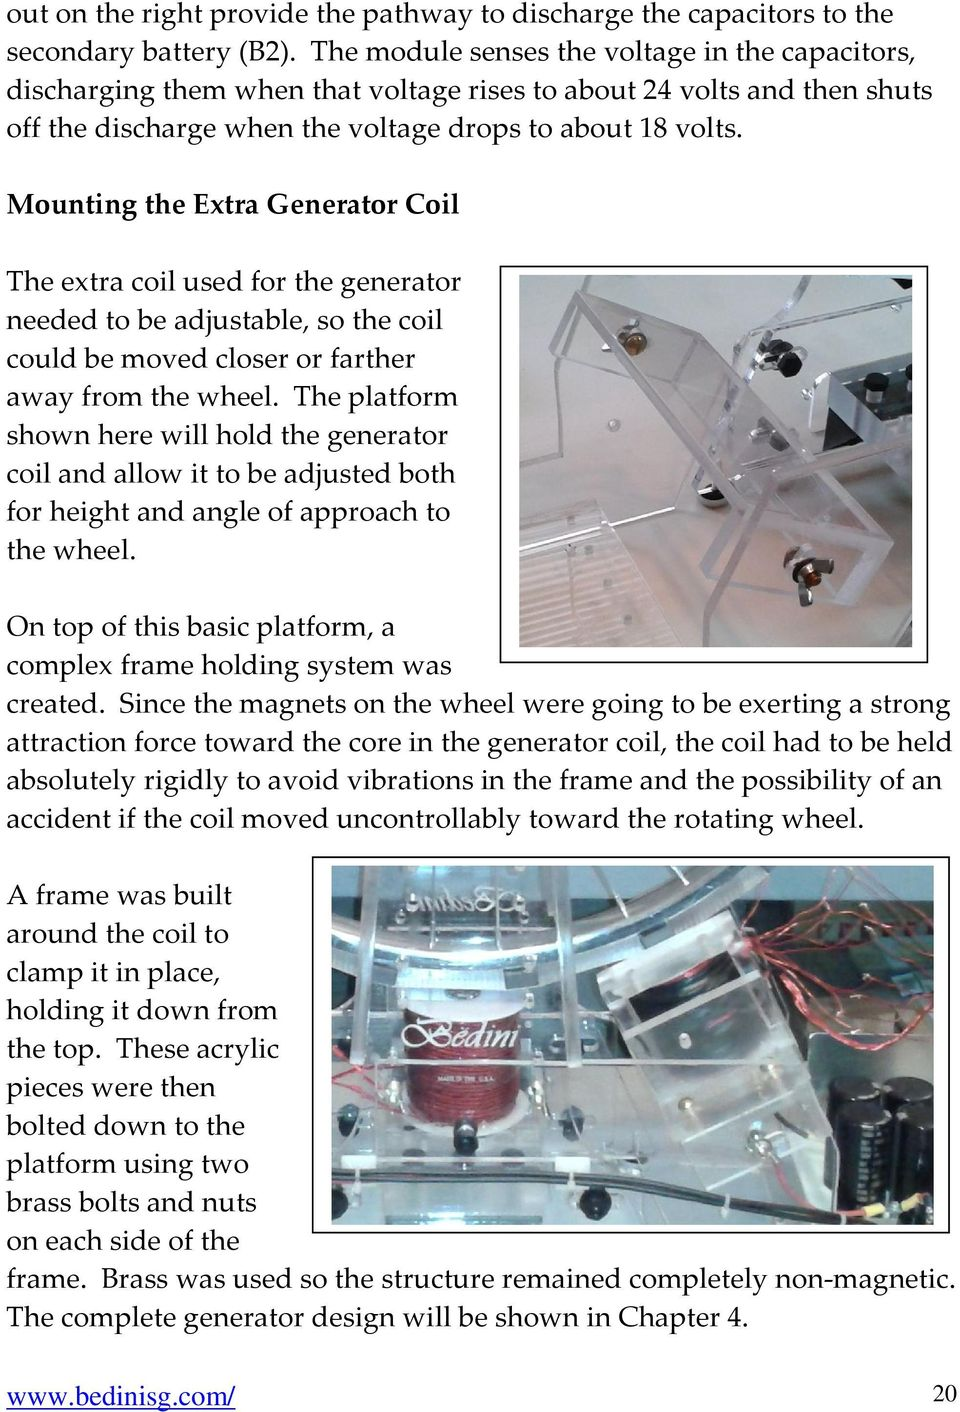 Bedini Sg The Complete Advanced Handbook Written By Peter Thisdiagram Was Used John To Test Tesla Switch Mounting Extra Generator Coil For Needed Be Adjustable